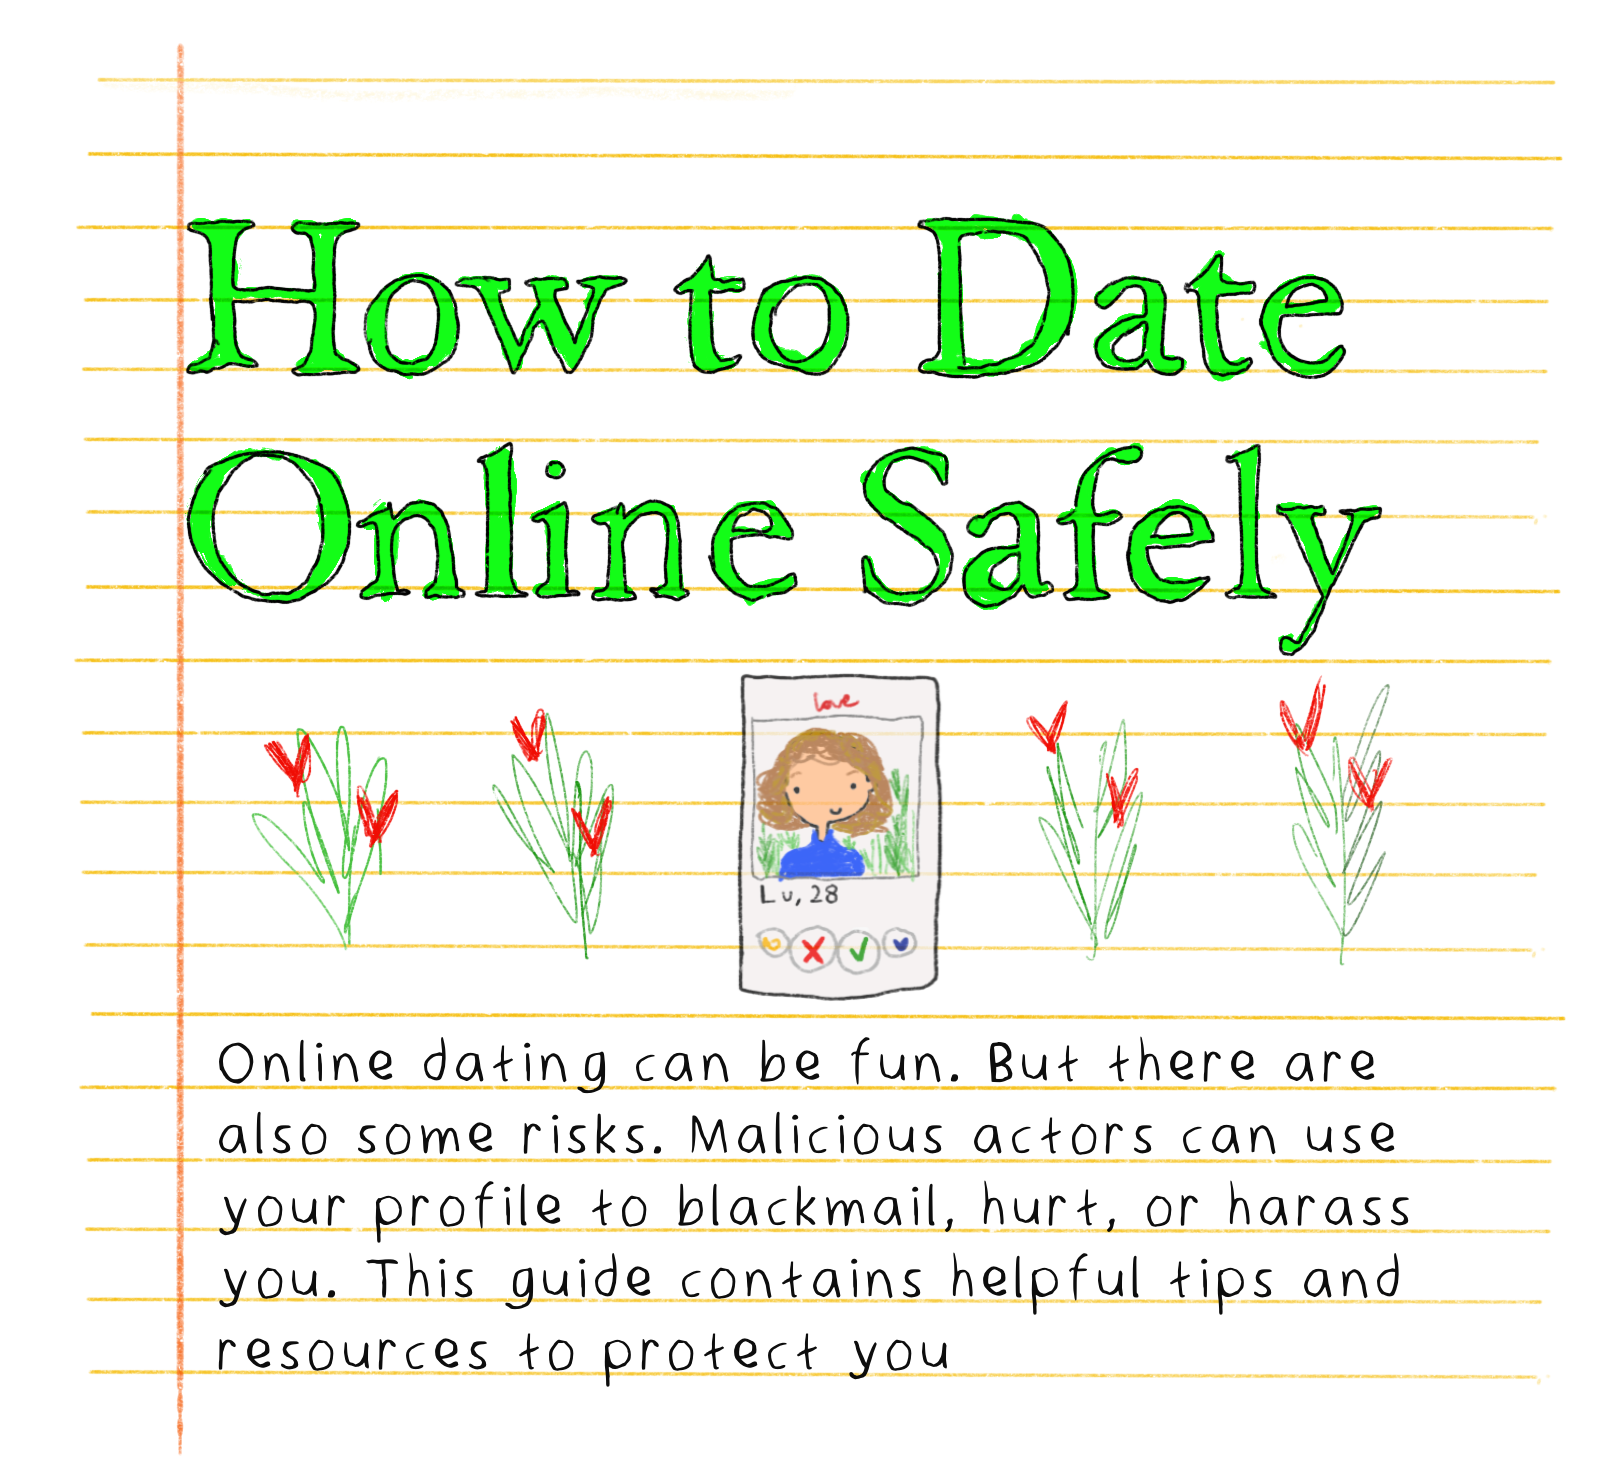 How to Date Online Safely - Online dating can be fun. But there are also some risks — Malicious actors can use your profile to blackmail, hurt, or harass you. This guide contains helpful tips and resources to protect you.